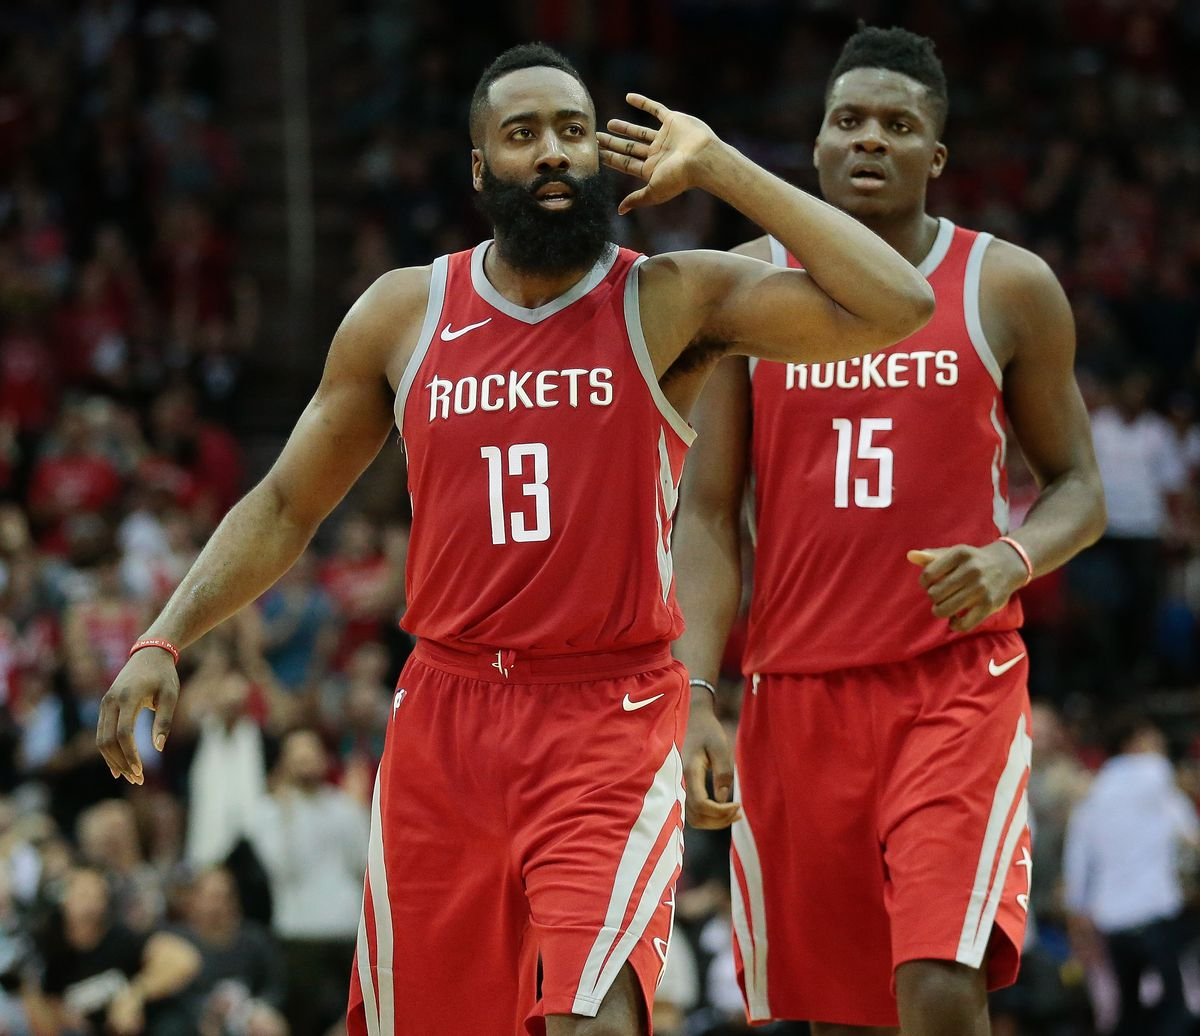 Houston Rockets Championship Roster: What To Expect When You're Expecting: Will The Warriors